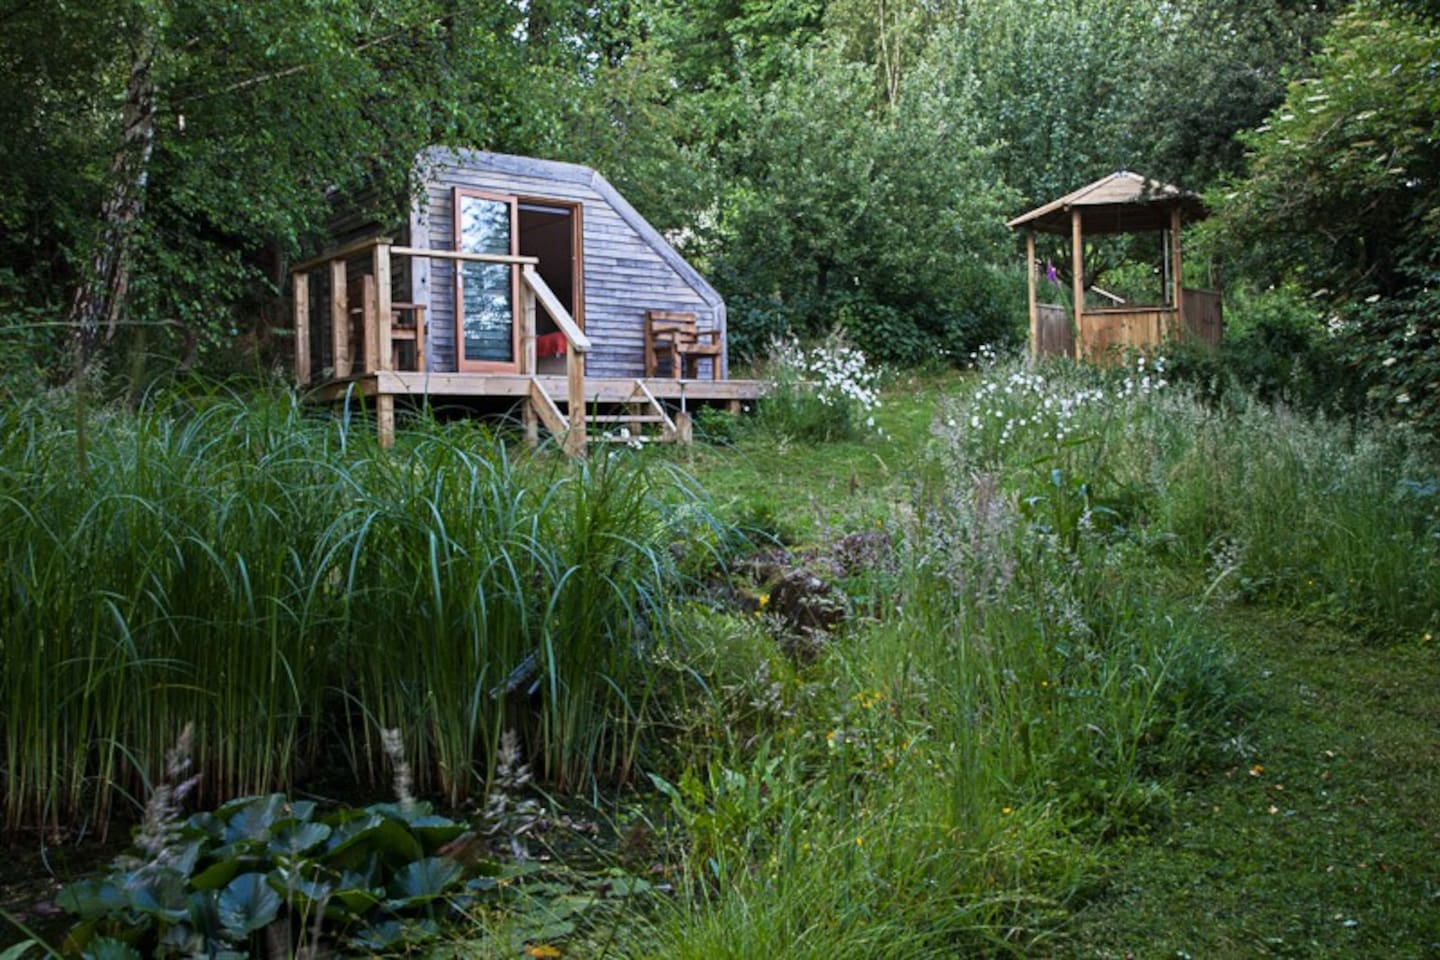 View from the wildlife pond to the Pod and gazebo.